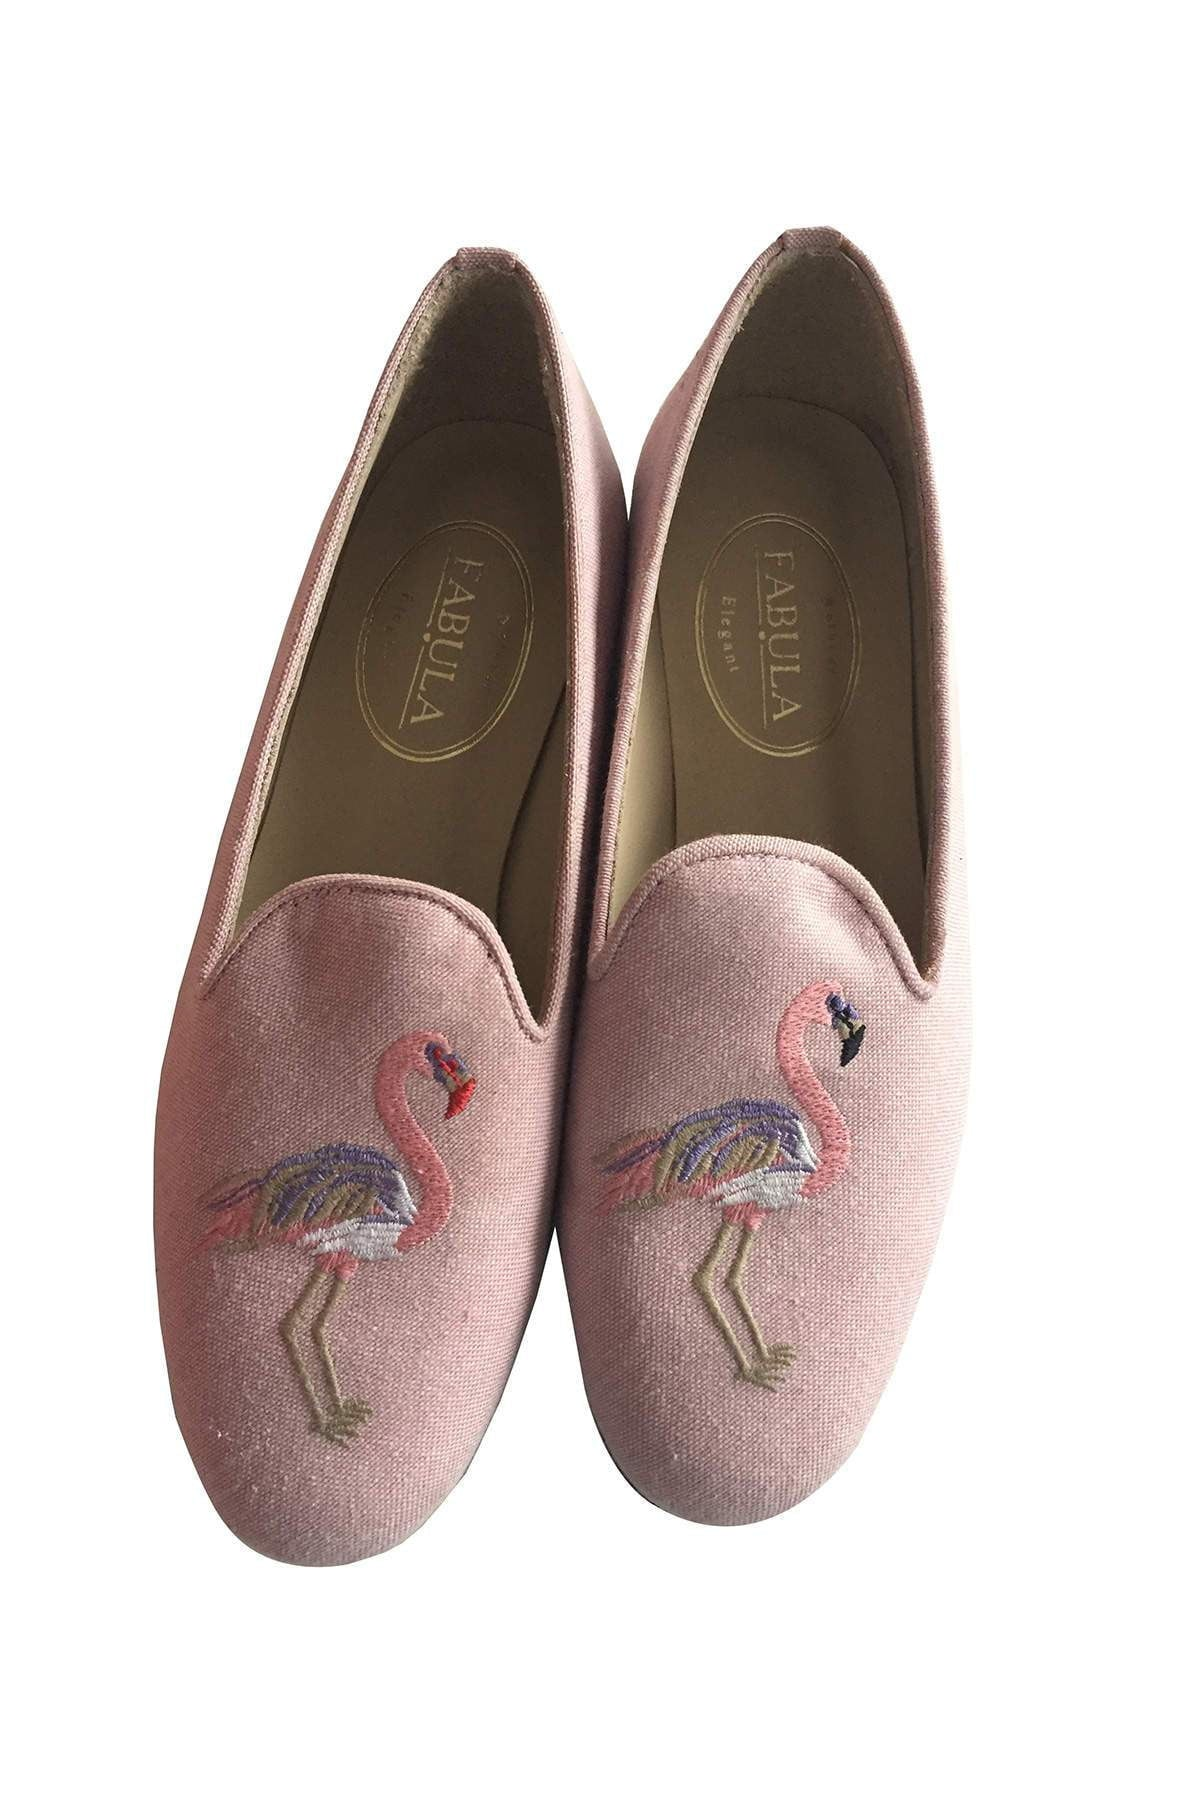 pink linen slippers with a flamingo embroidery for women